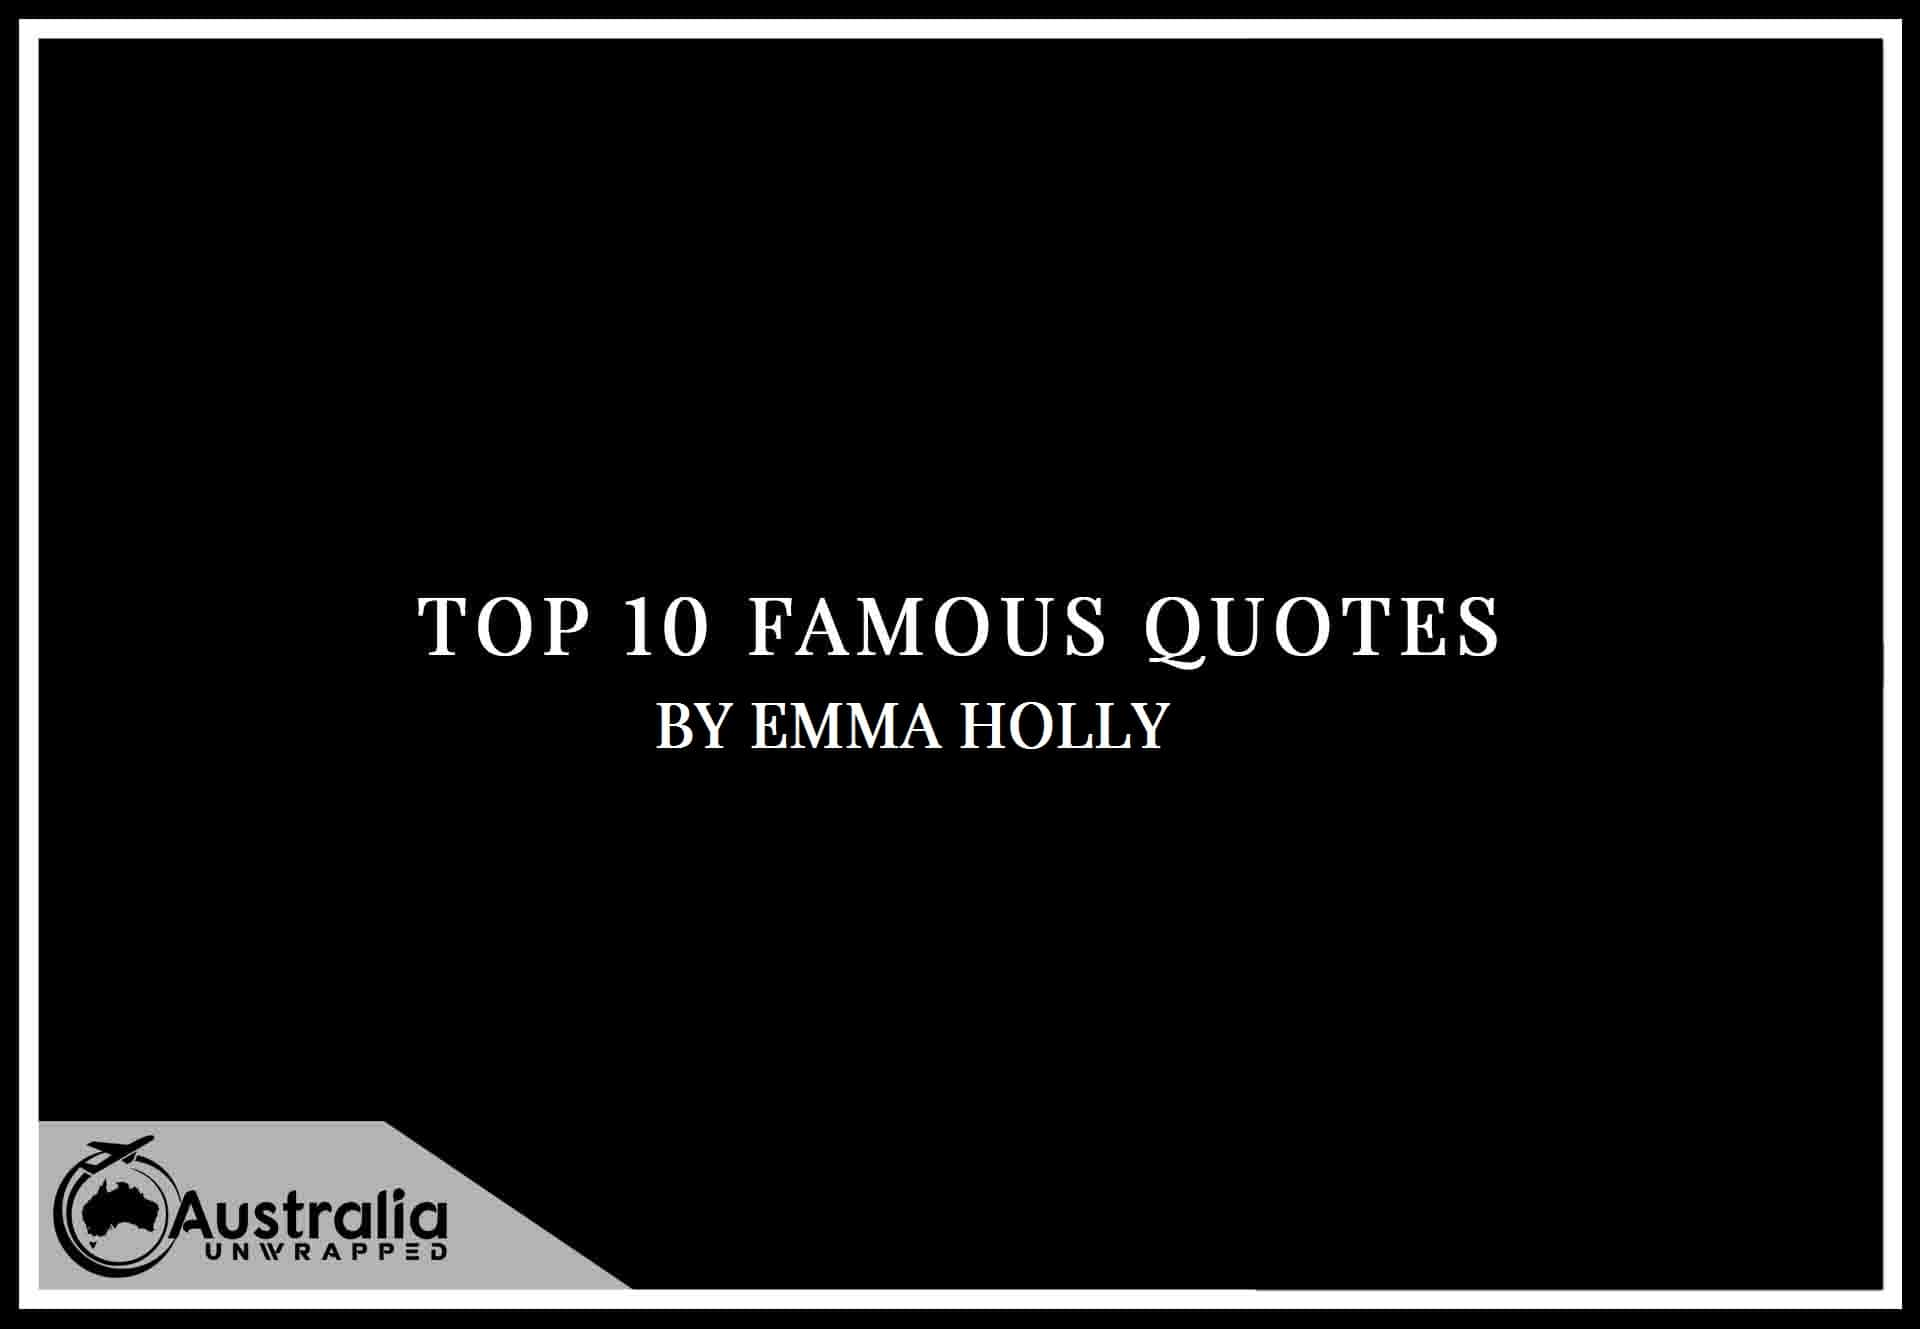 Emma Holly's Top 10 Popular and Famous Quotes